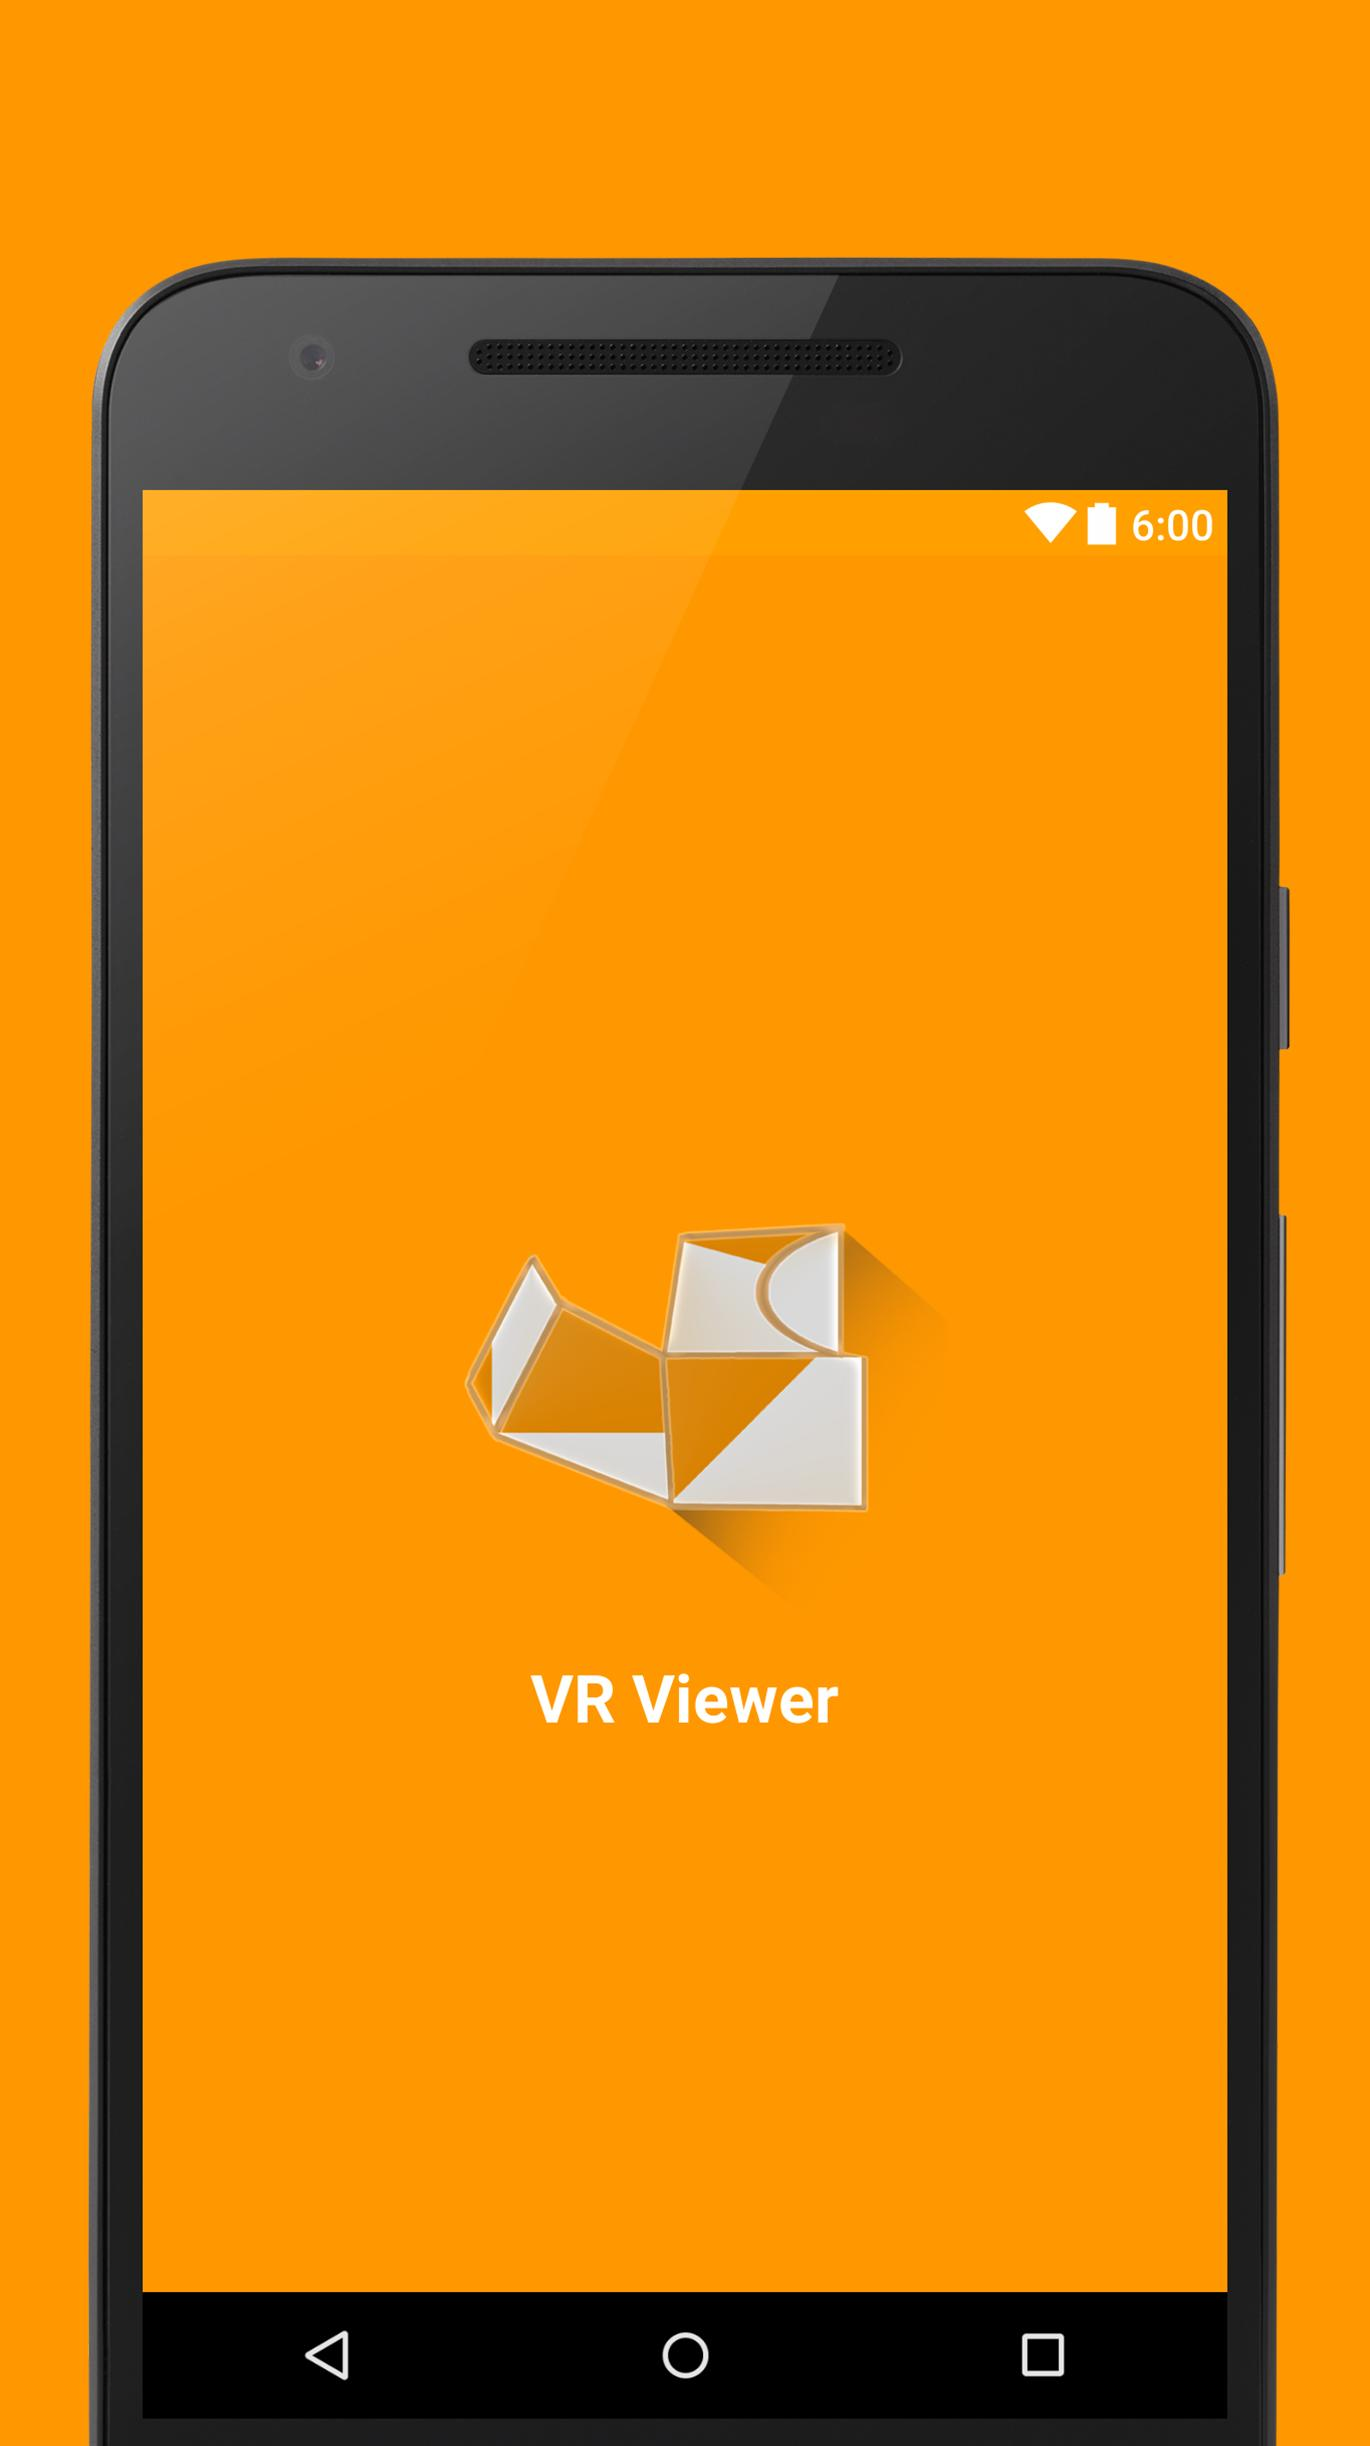 Vr Viewer for Android - APK Download